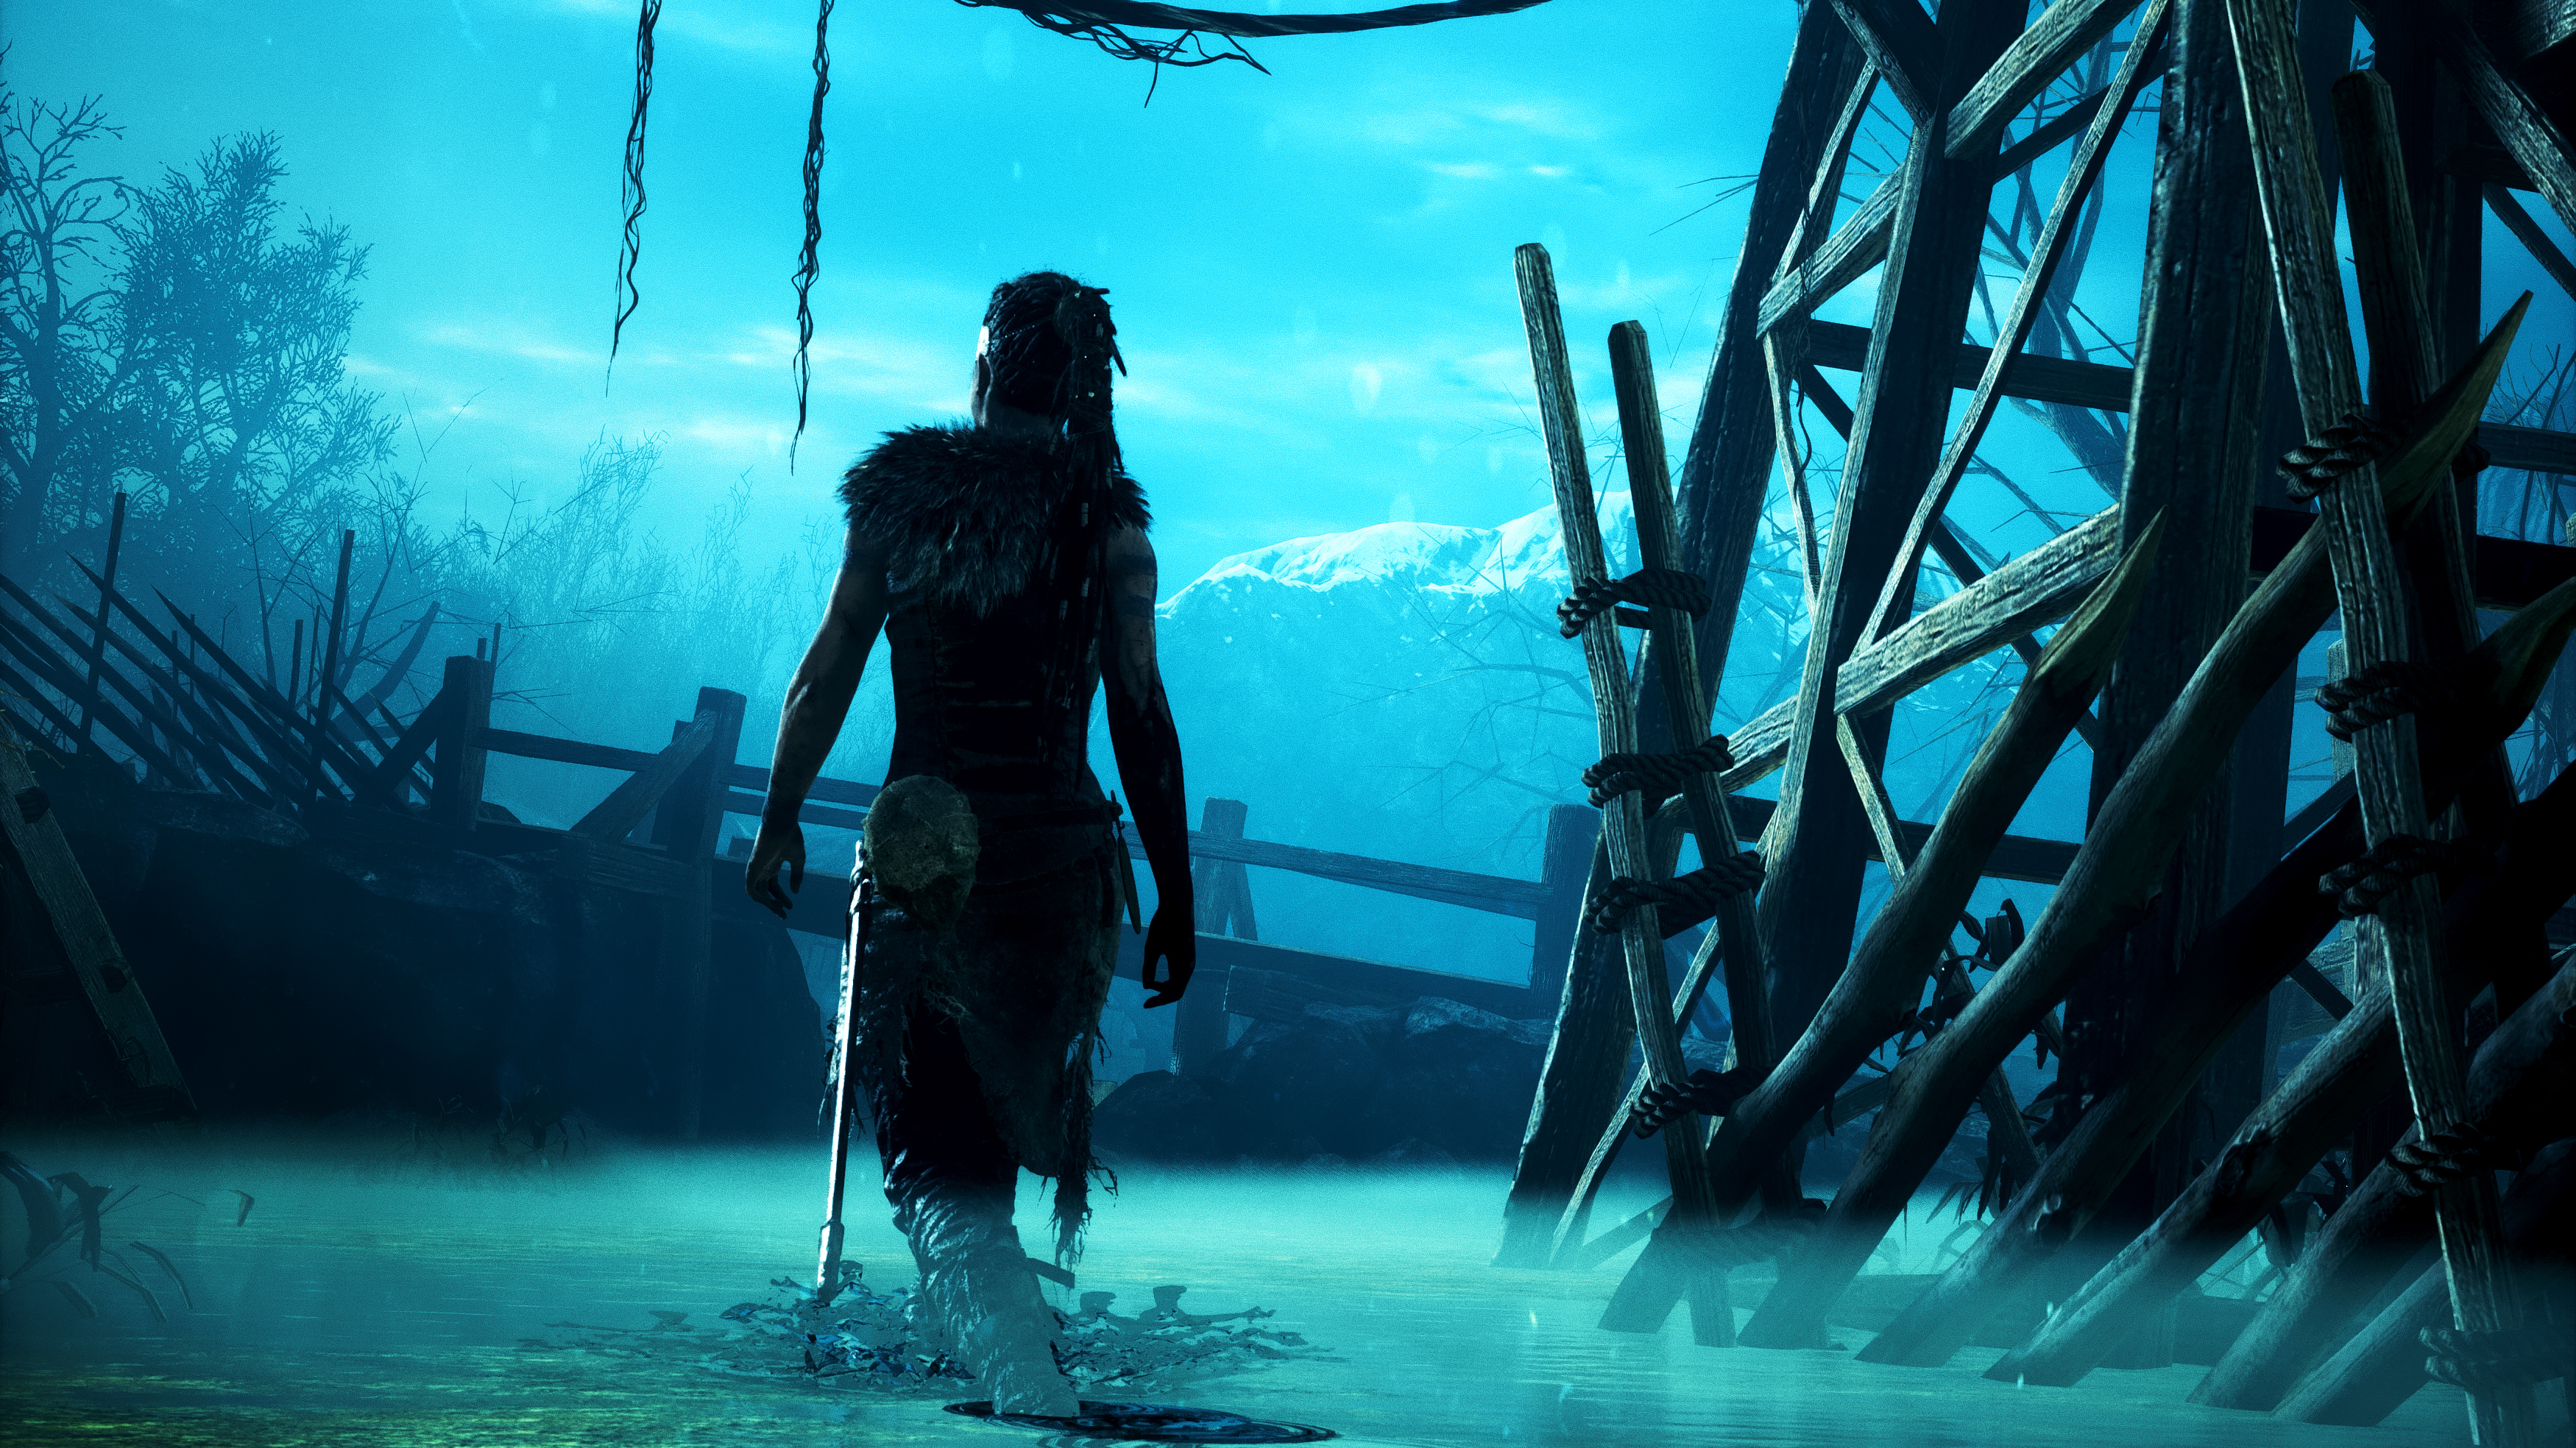 1366x768 4k hellblade senuas sacrifice 1366x768 resolution hd 4k wallpapers images backgrounds - Sacrifice wallpaper ...